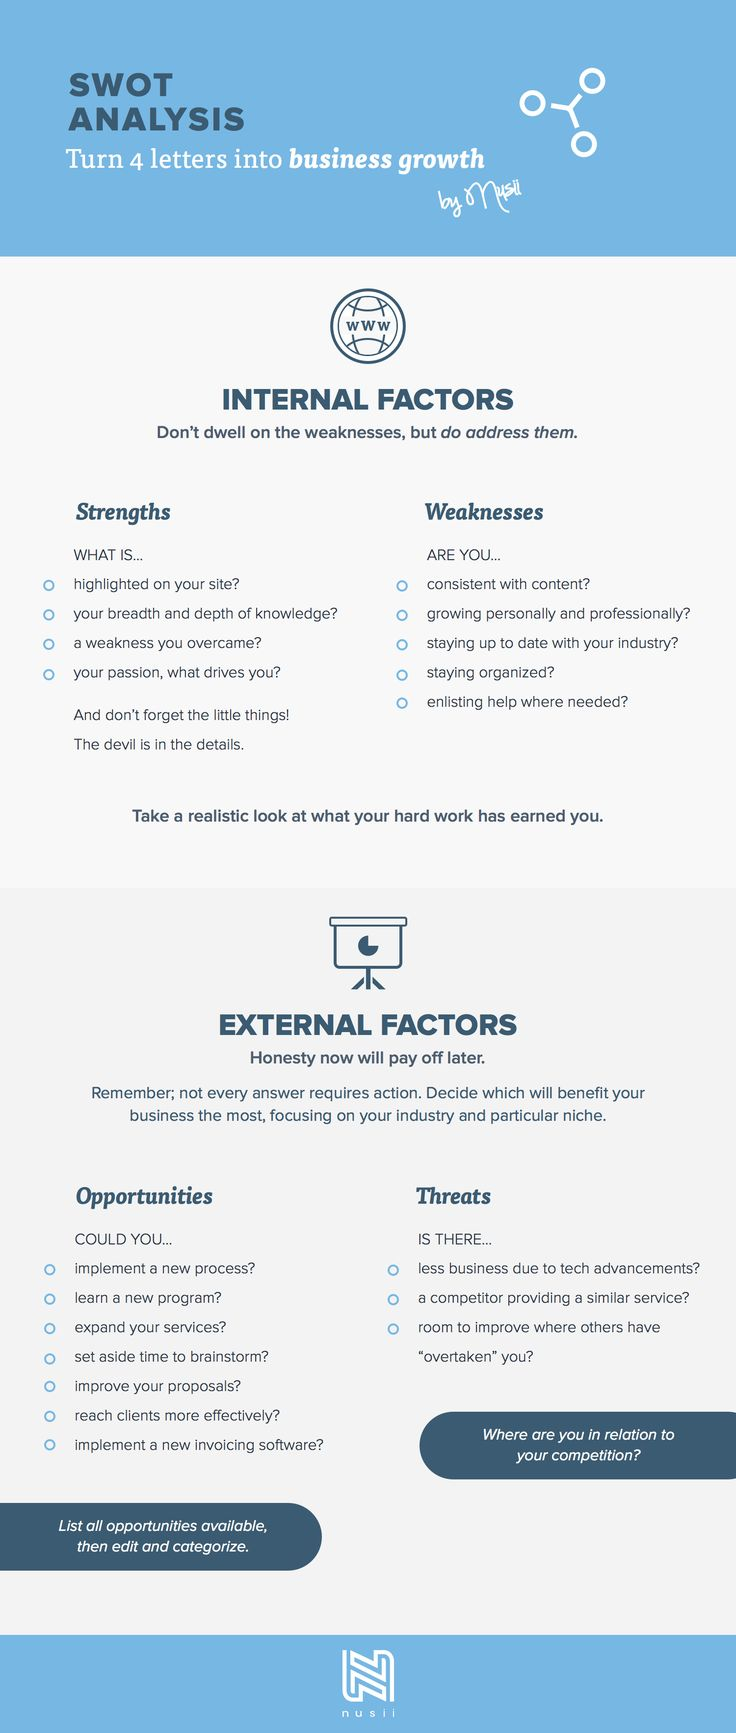 17 best ideas about swot analysis strategic do you know what your current business strengths and weaknesses are in relation to others swot analysis can get your business into gear and on track